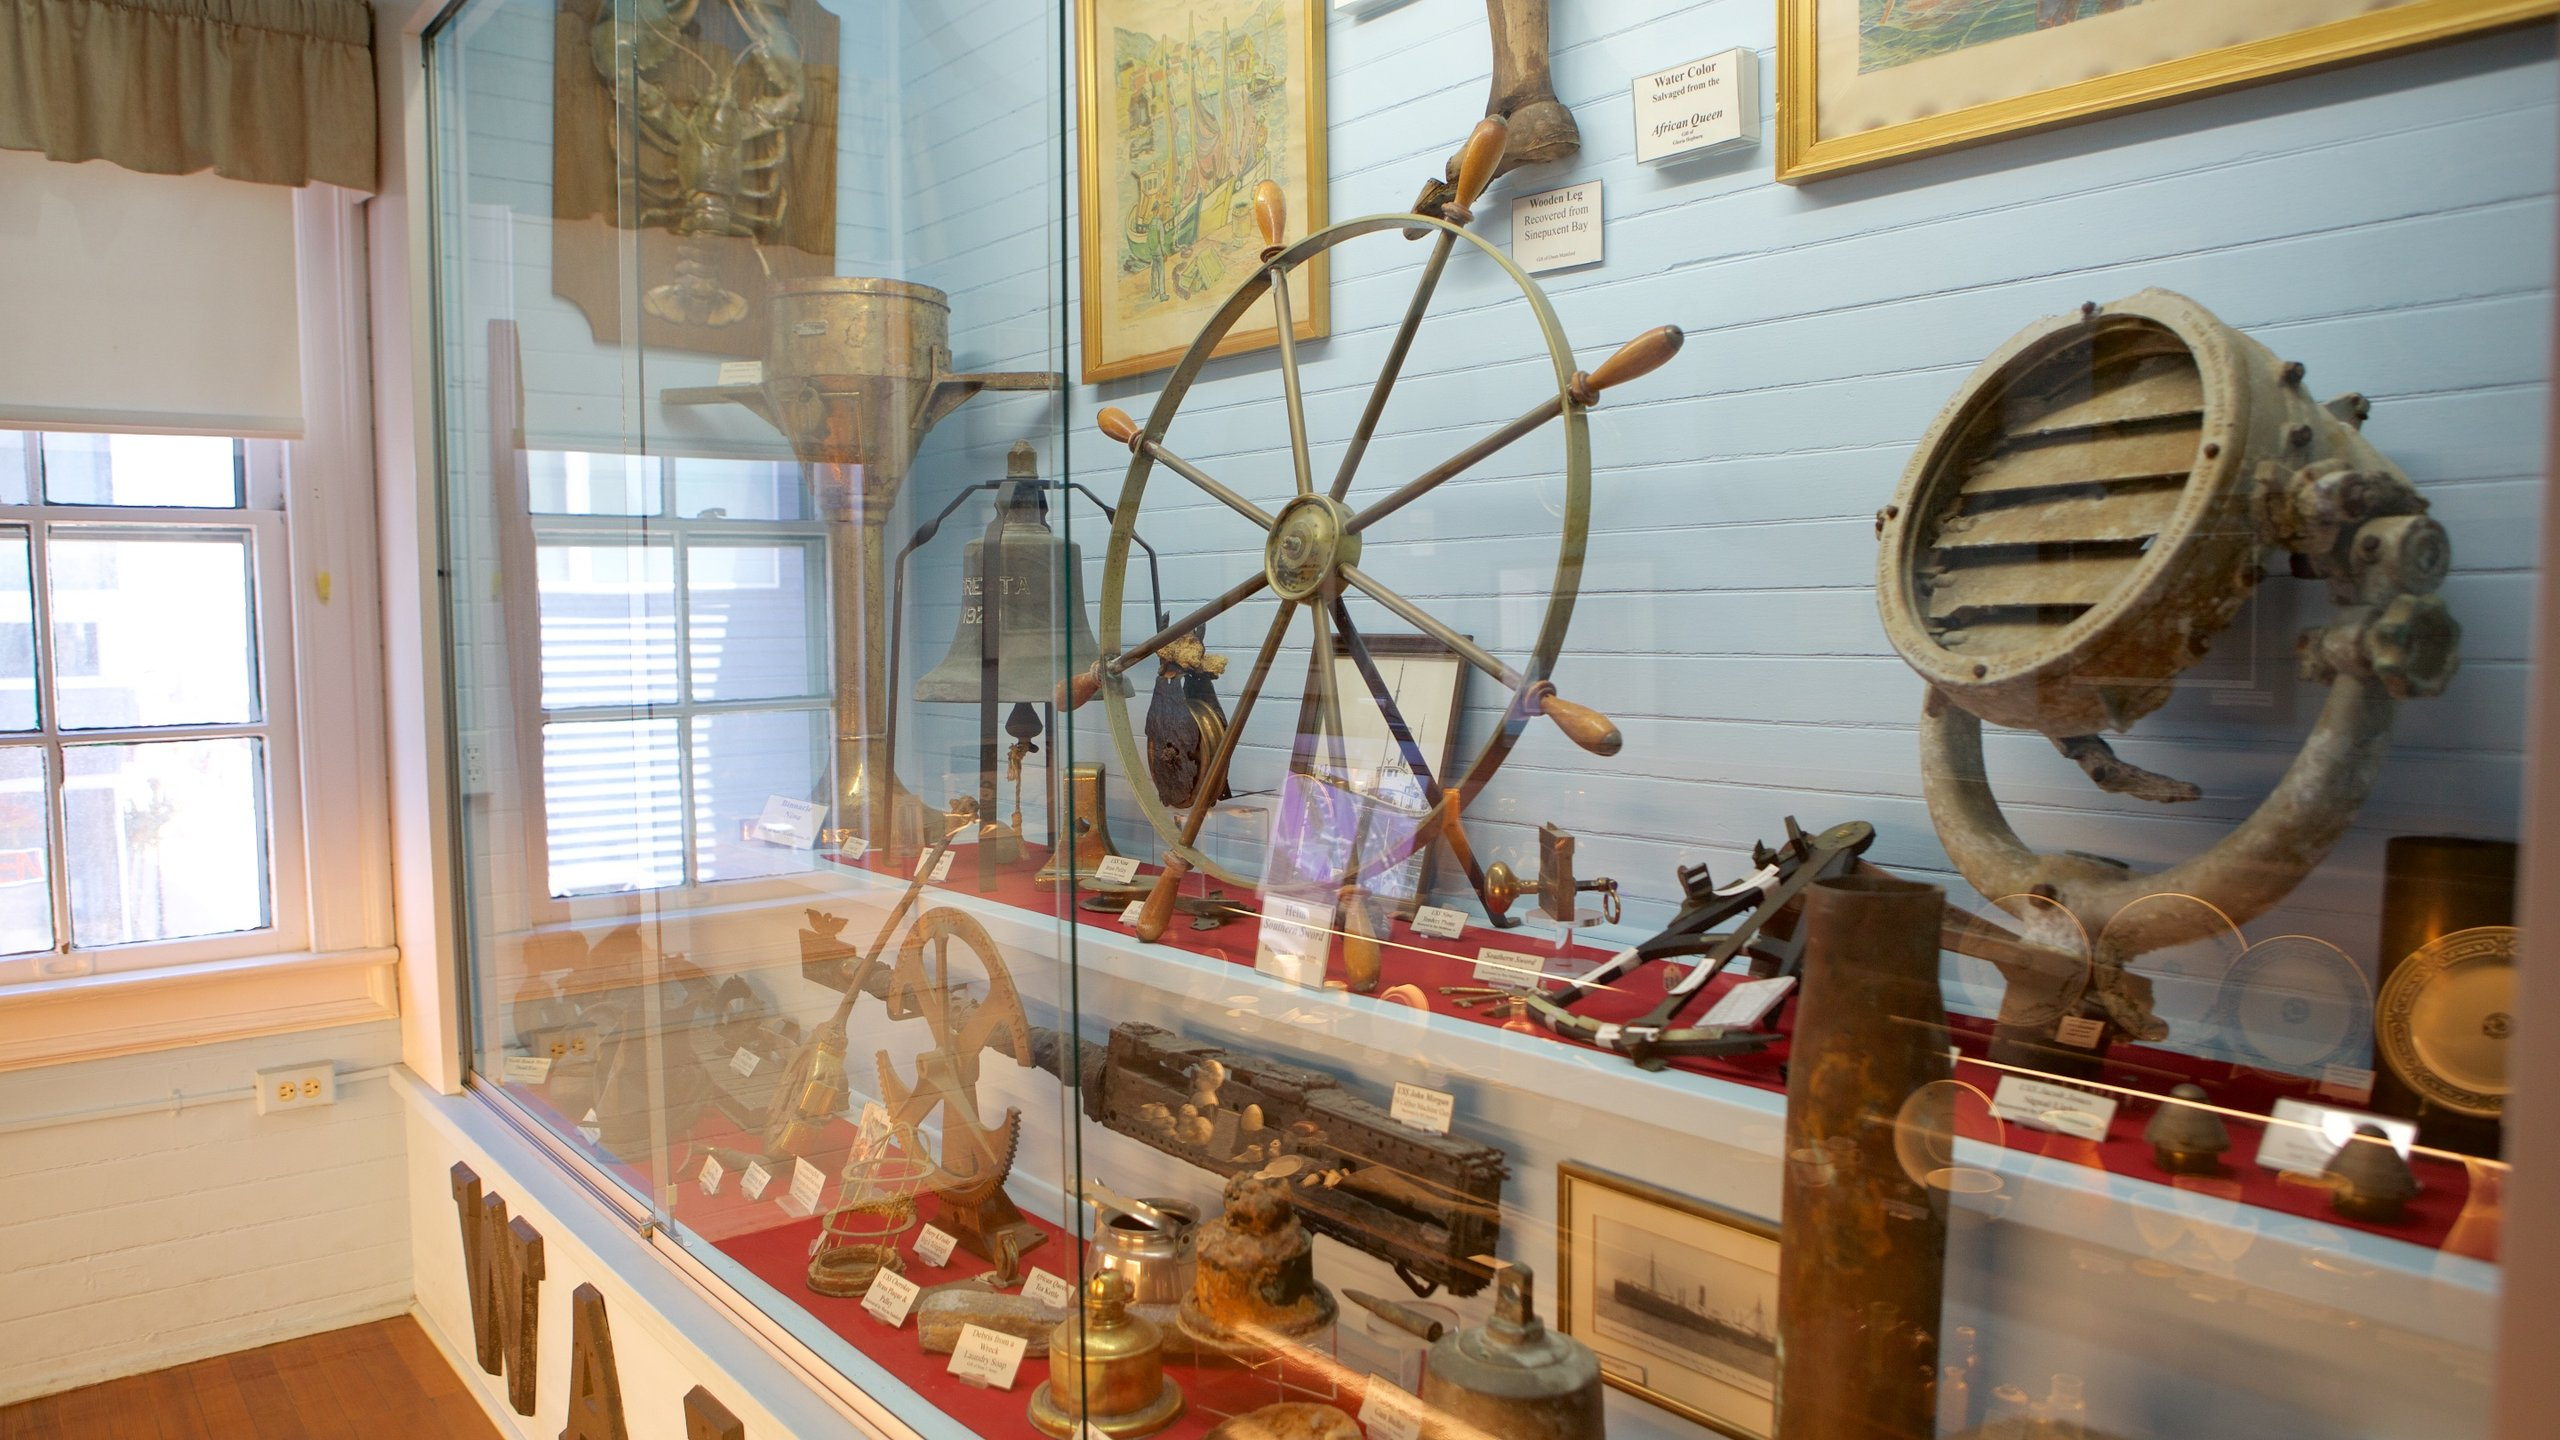 Ocean City Life-Saving Station Museum, Ocean City, Maryland, United States of America